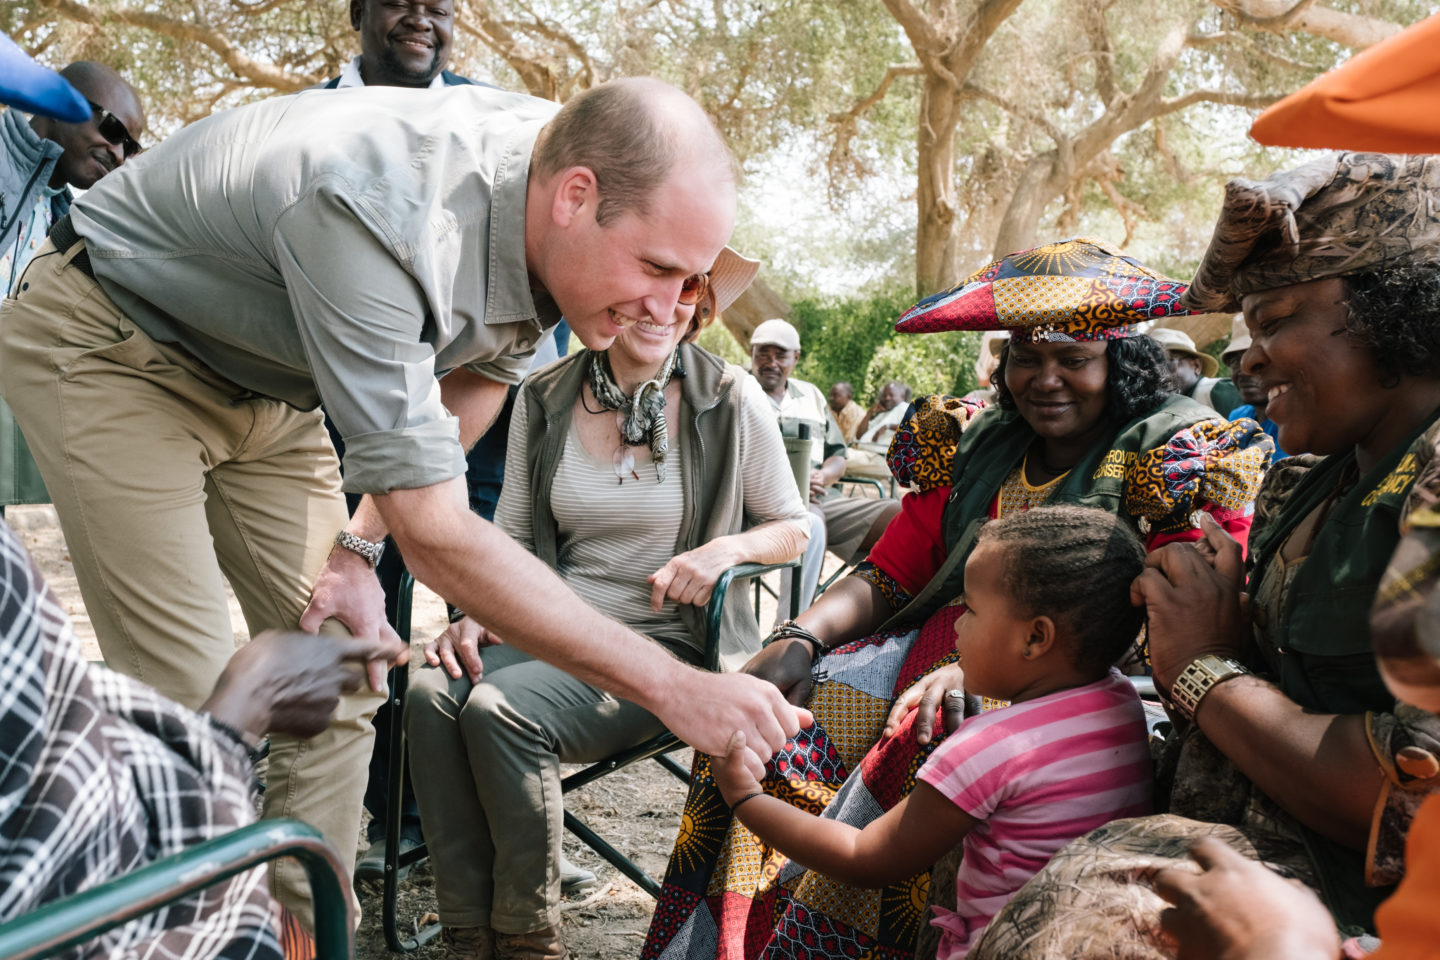 Prince William Visits Tusk Projects in Namibia